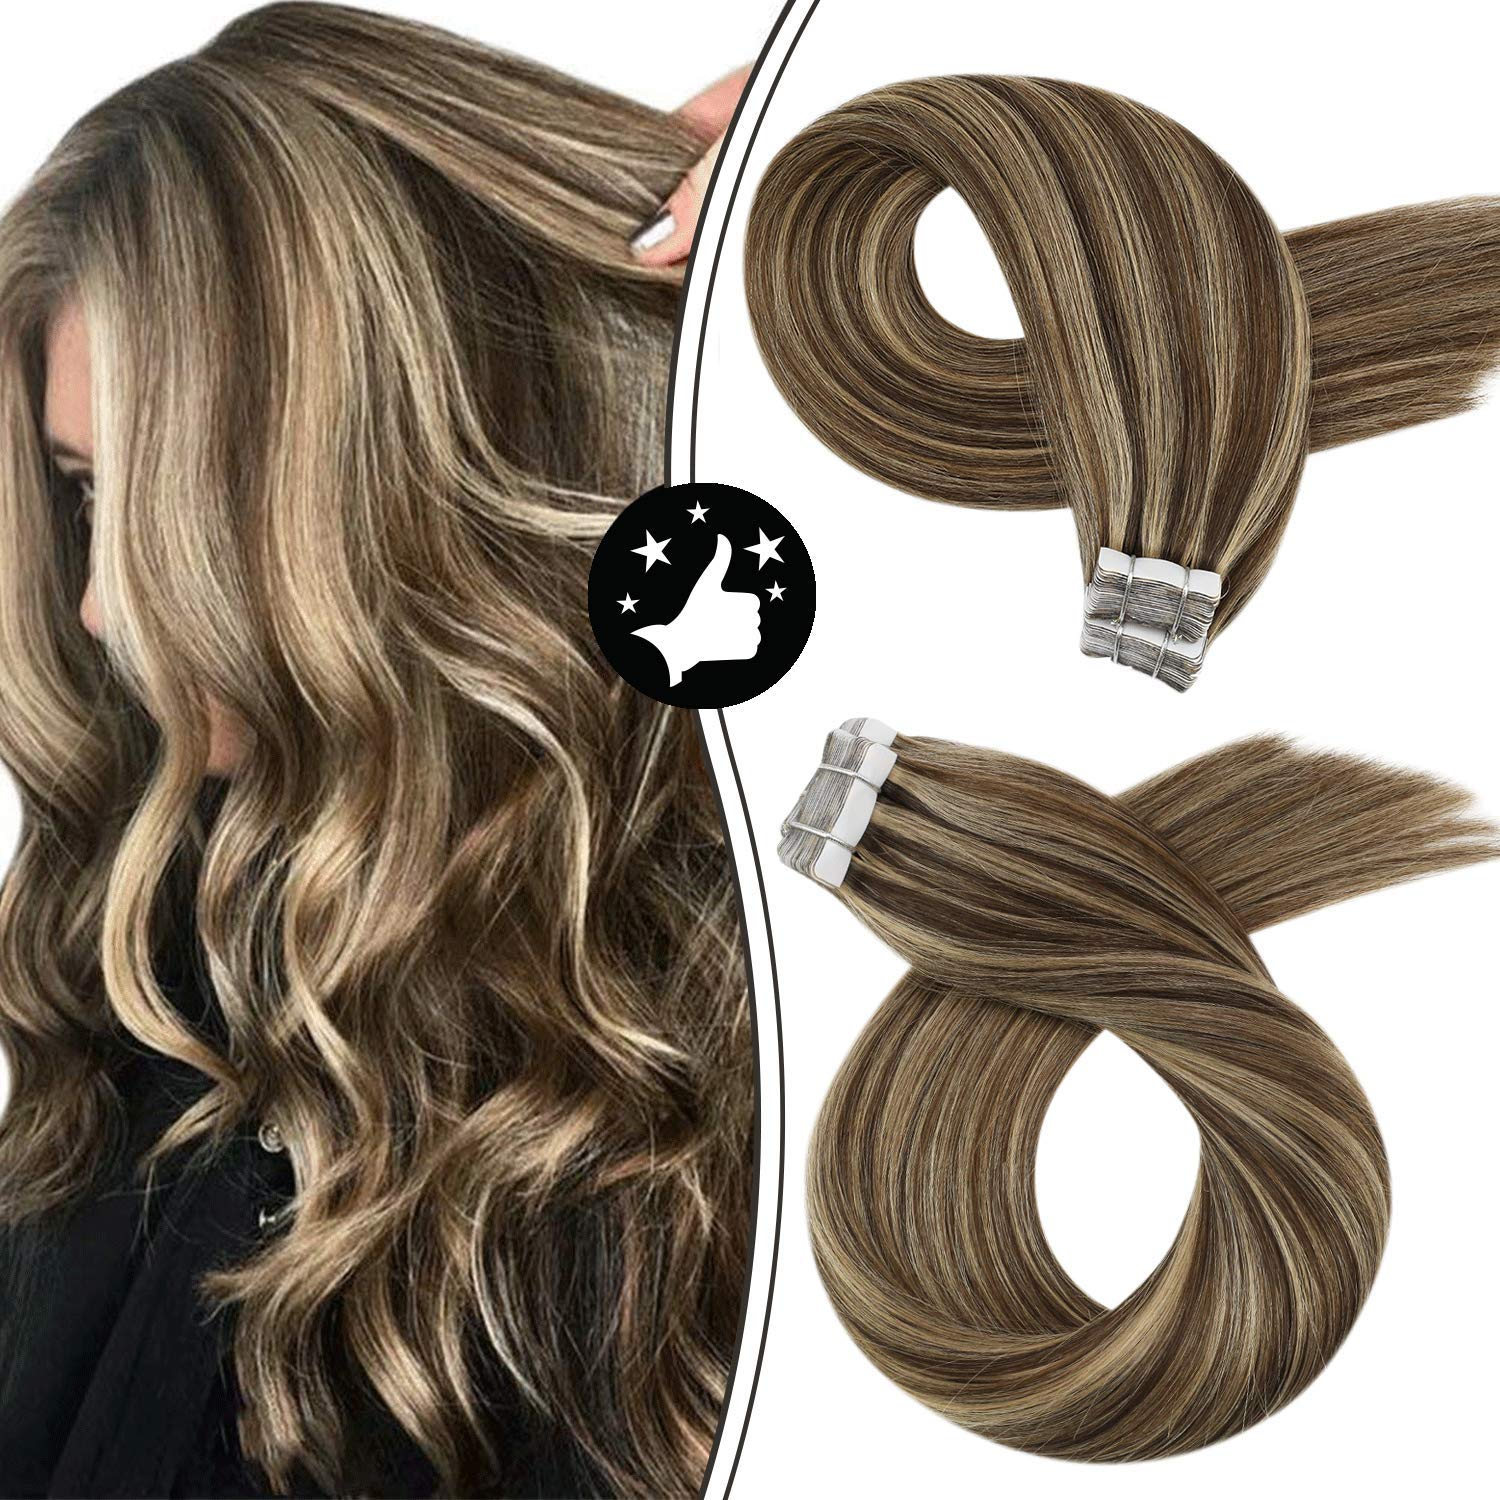 Tape in Extensions Highlights P4/27 Adhesive PU Tape Machine Remy Seamless Glue in Hair Silky Straight 100% Real Human Hair